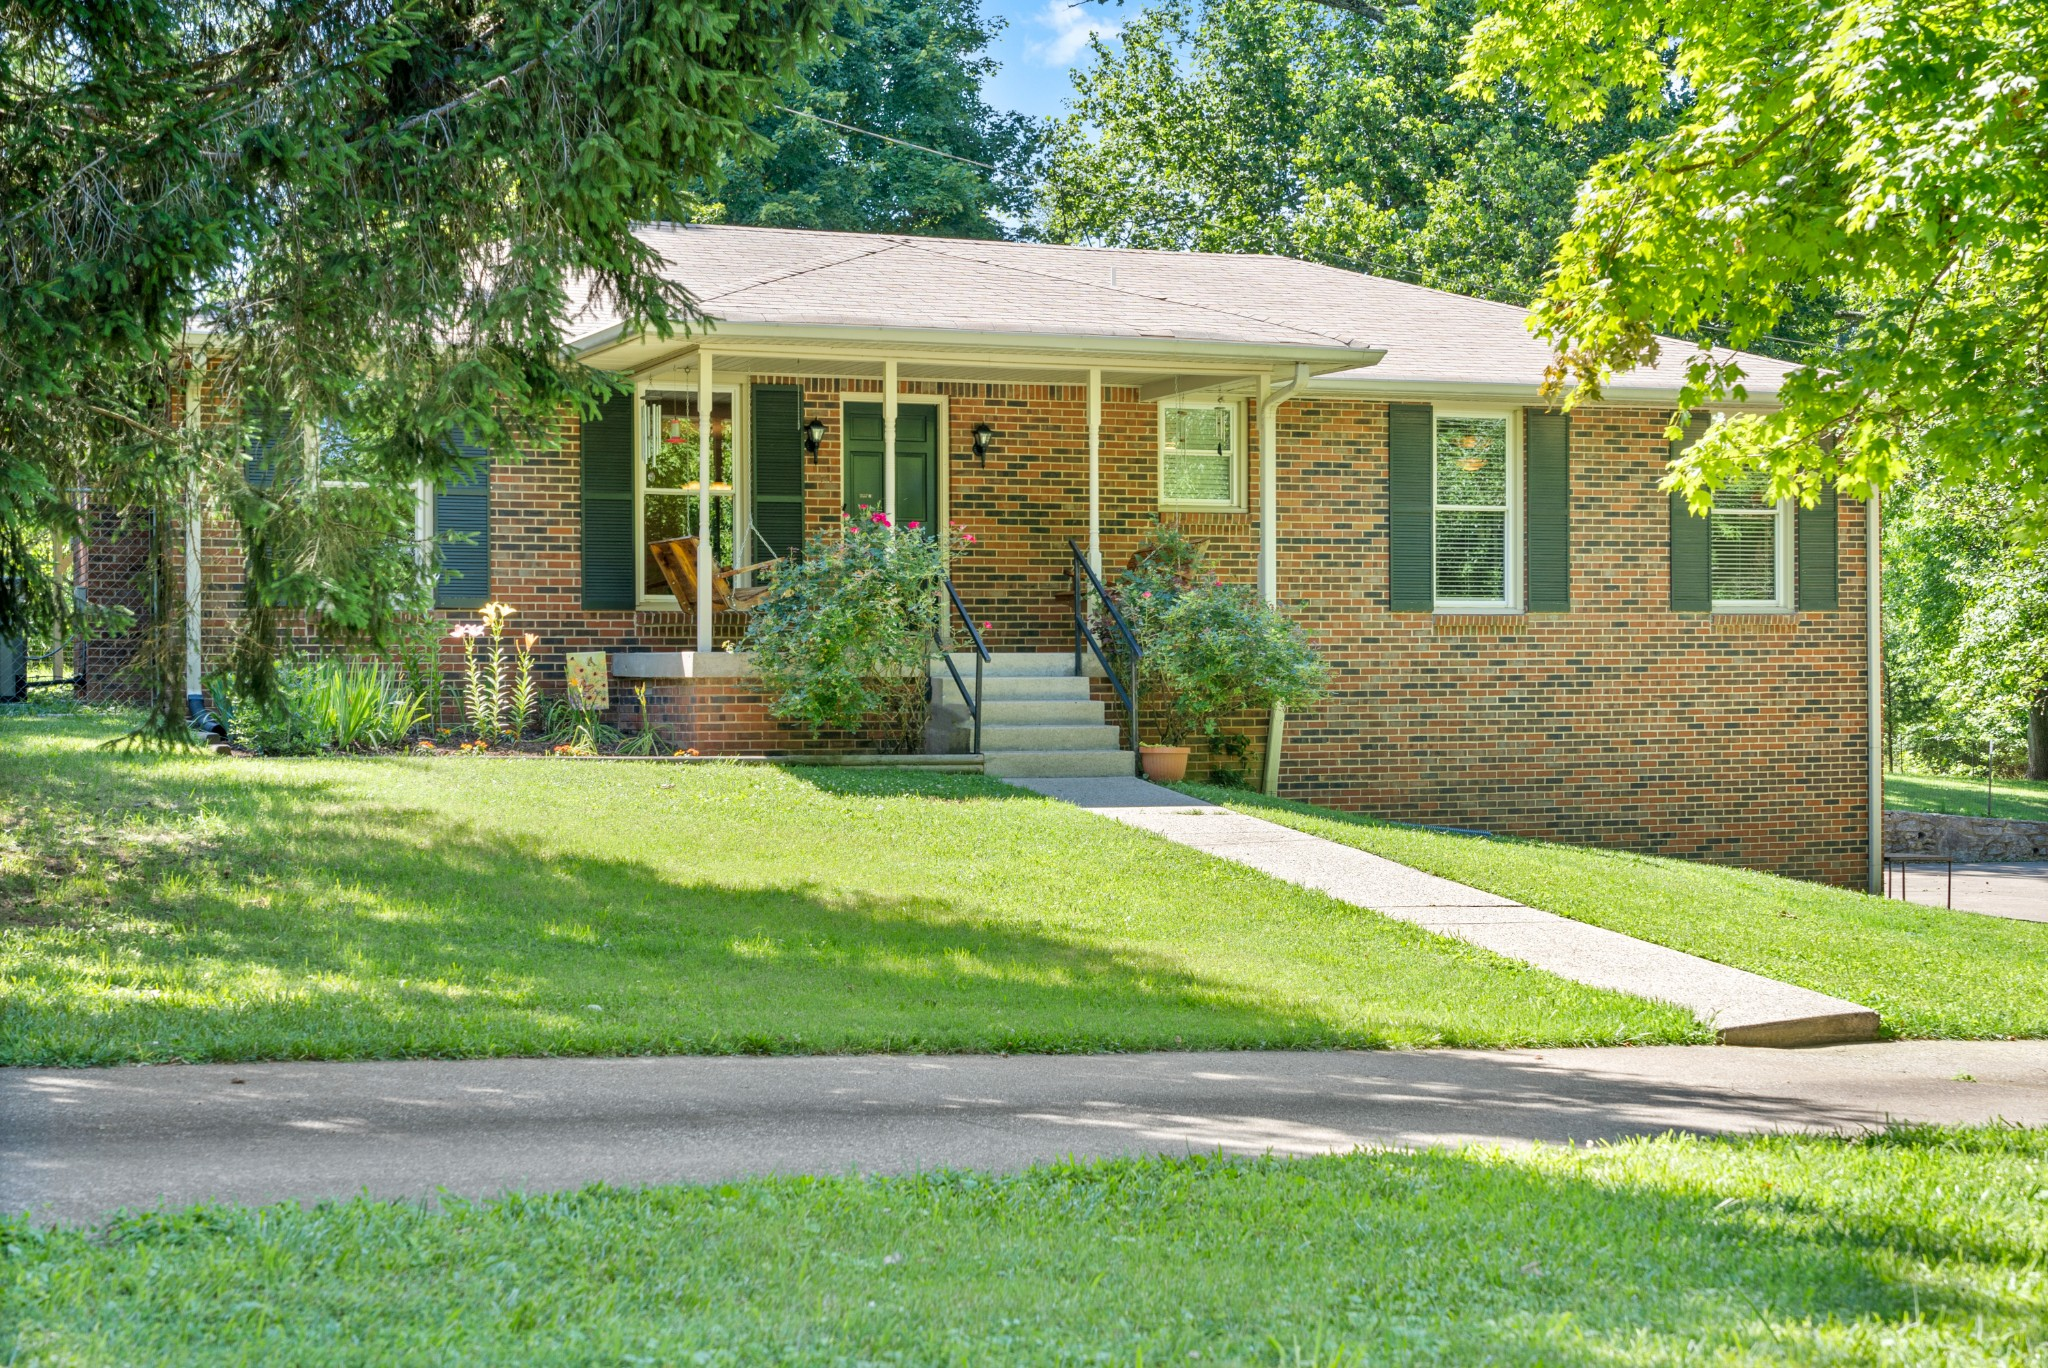 6179 Old Hickory Blvd Property Photo - Whites Creek, TN real estate listing